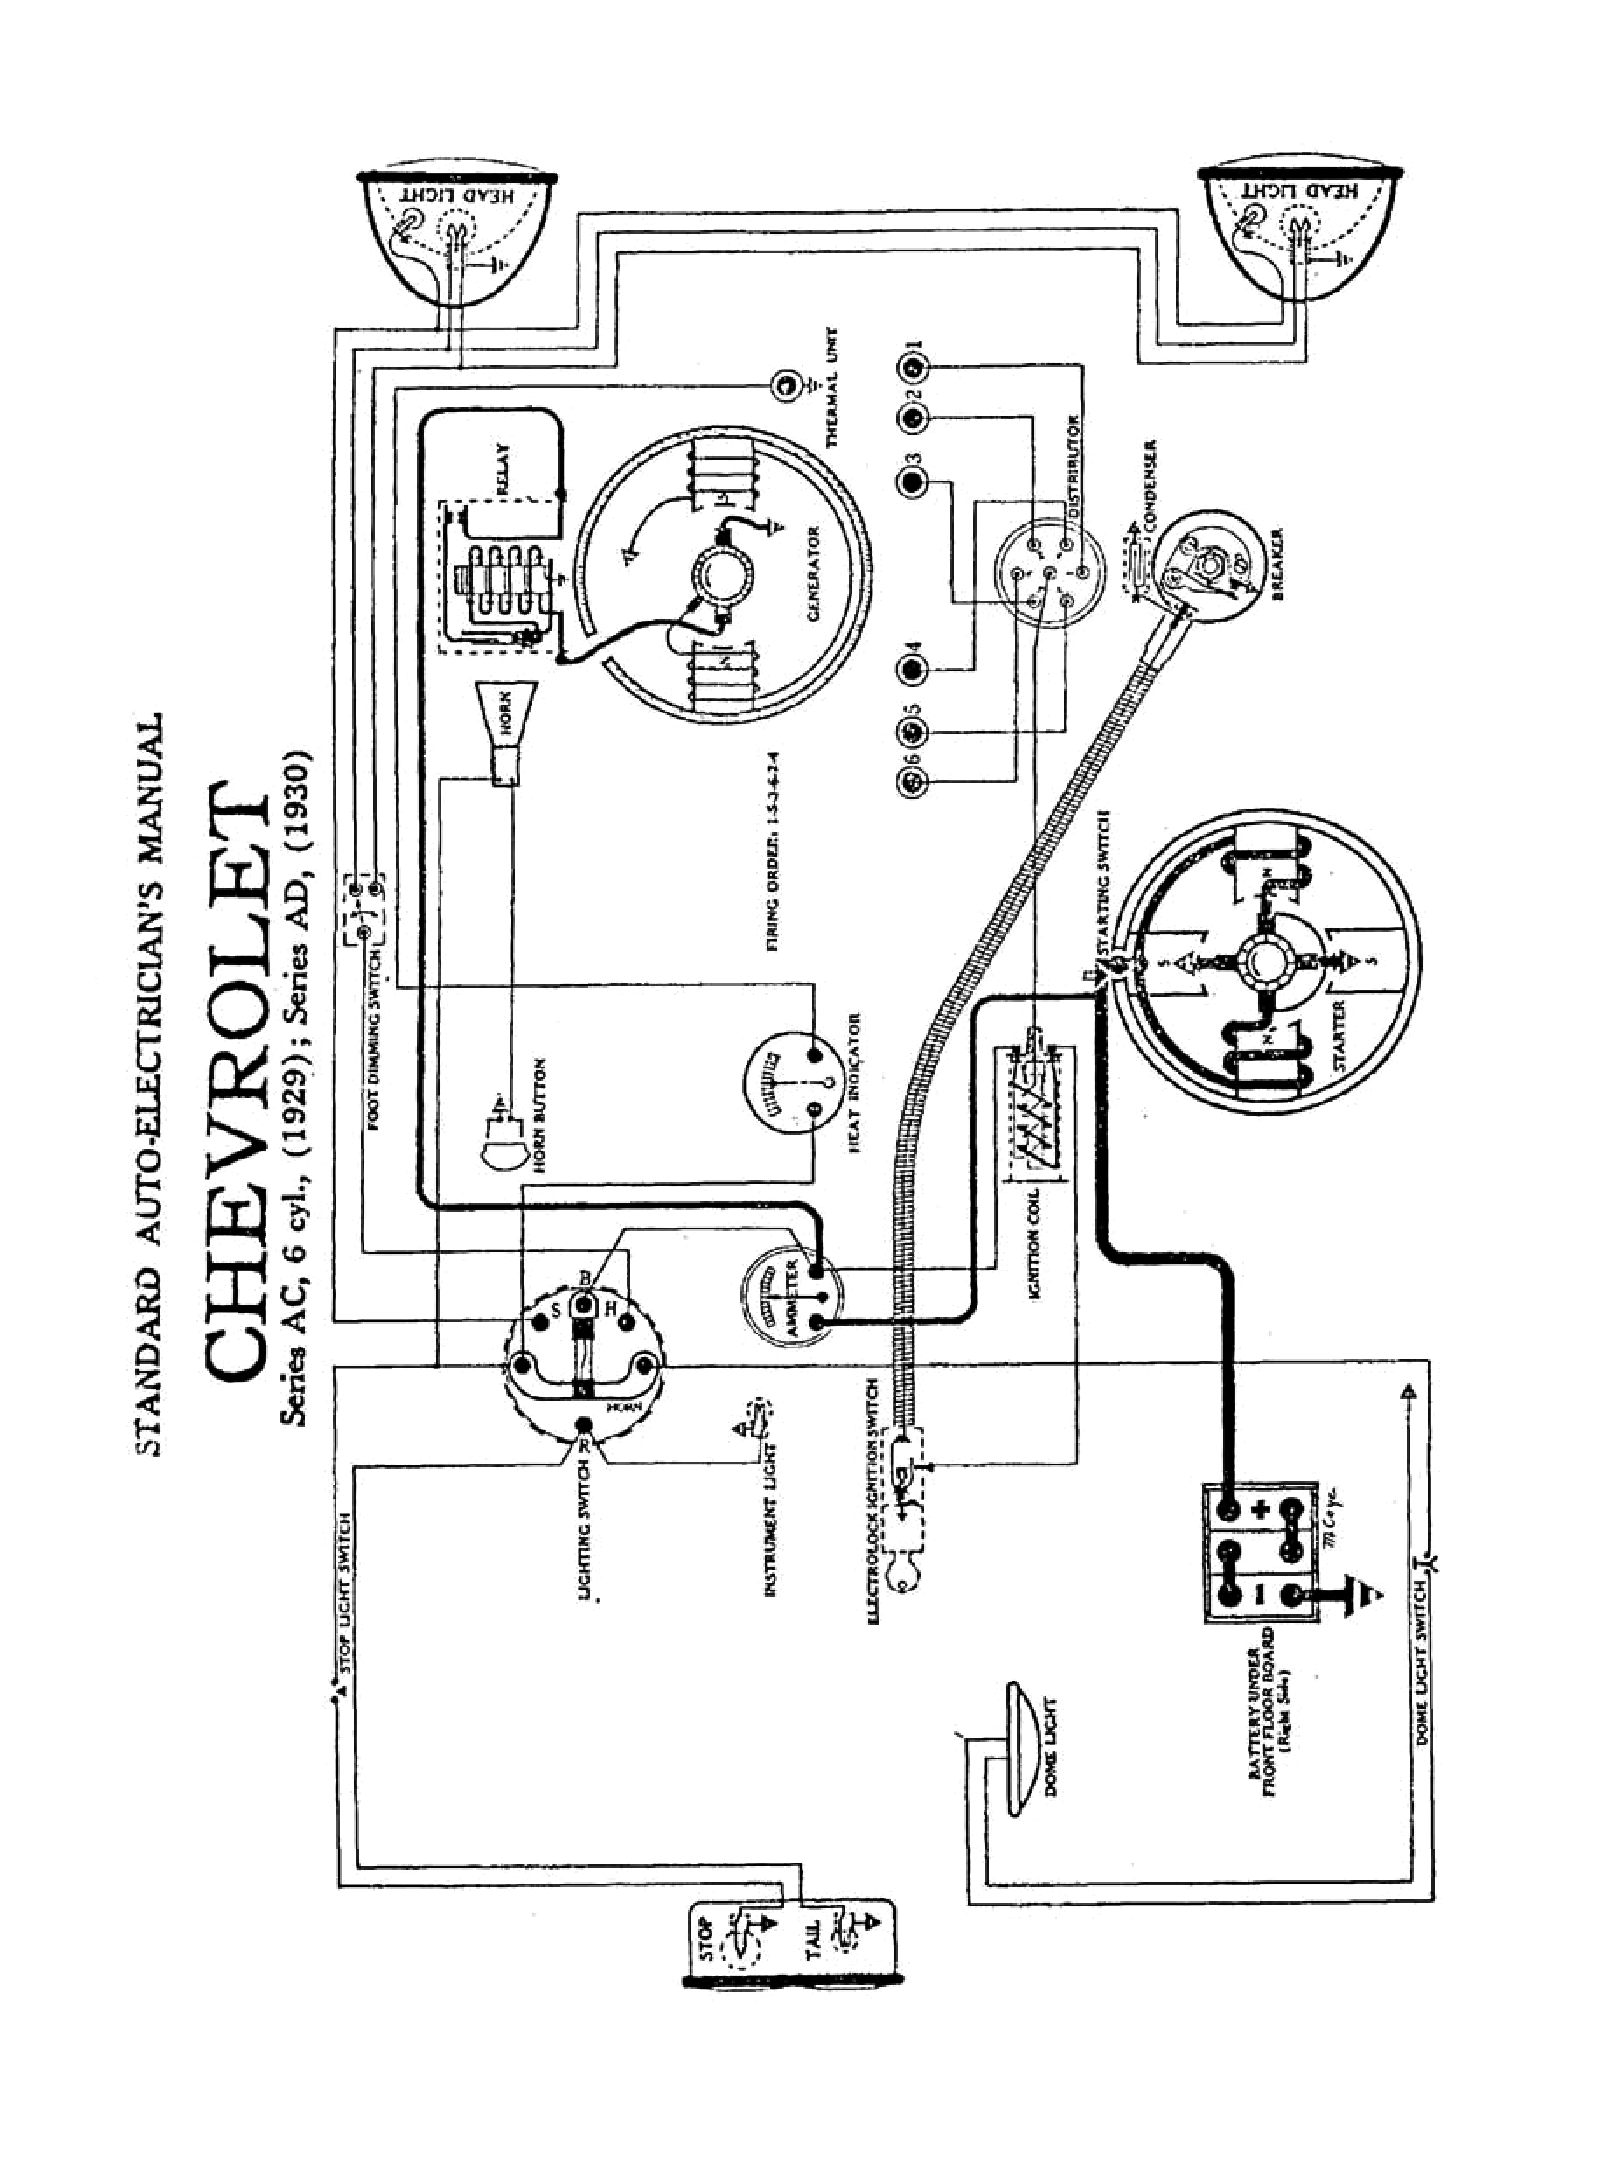 6 Volt Wiring Harness 51 F1 Library Tractor Alternator Diagram Related Keywords Suggestions 1929 Series Ac Model Chevy Diagrams